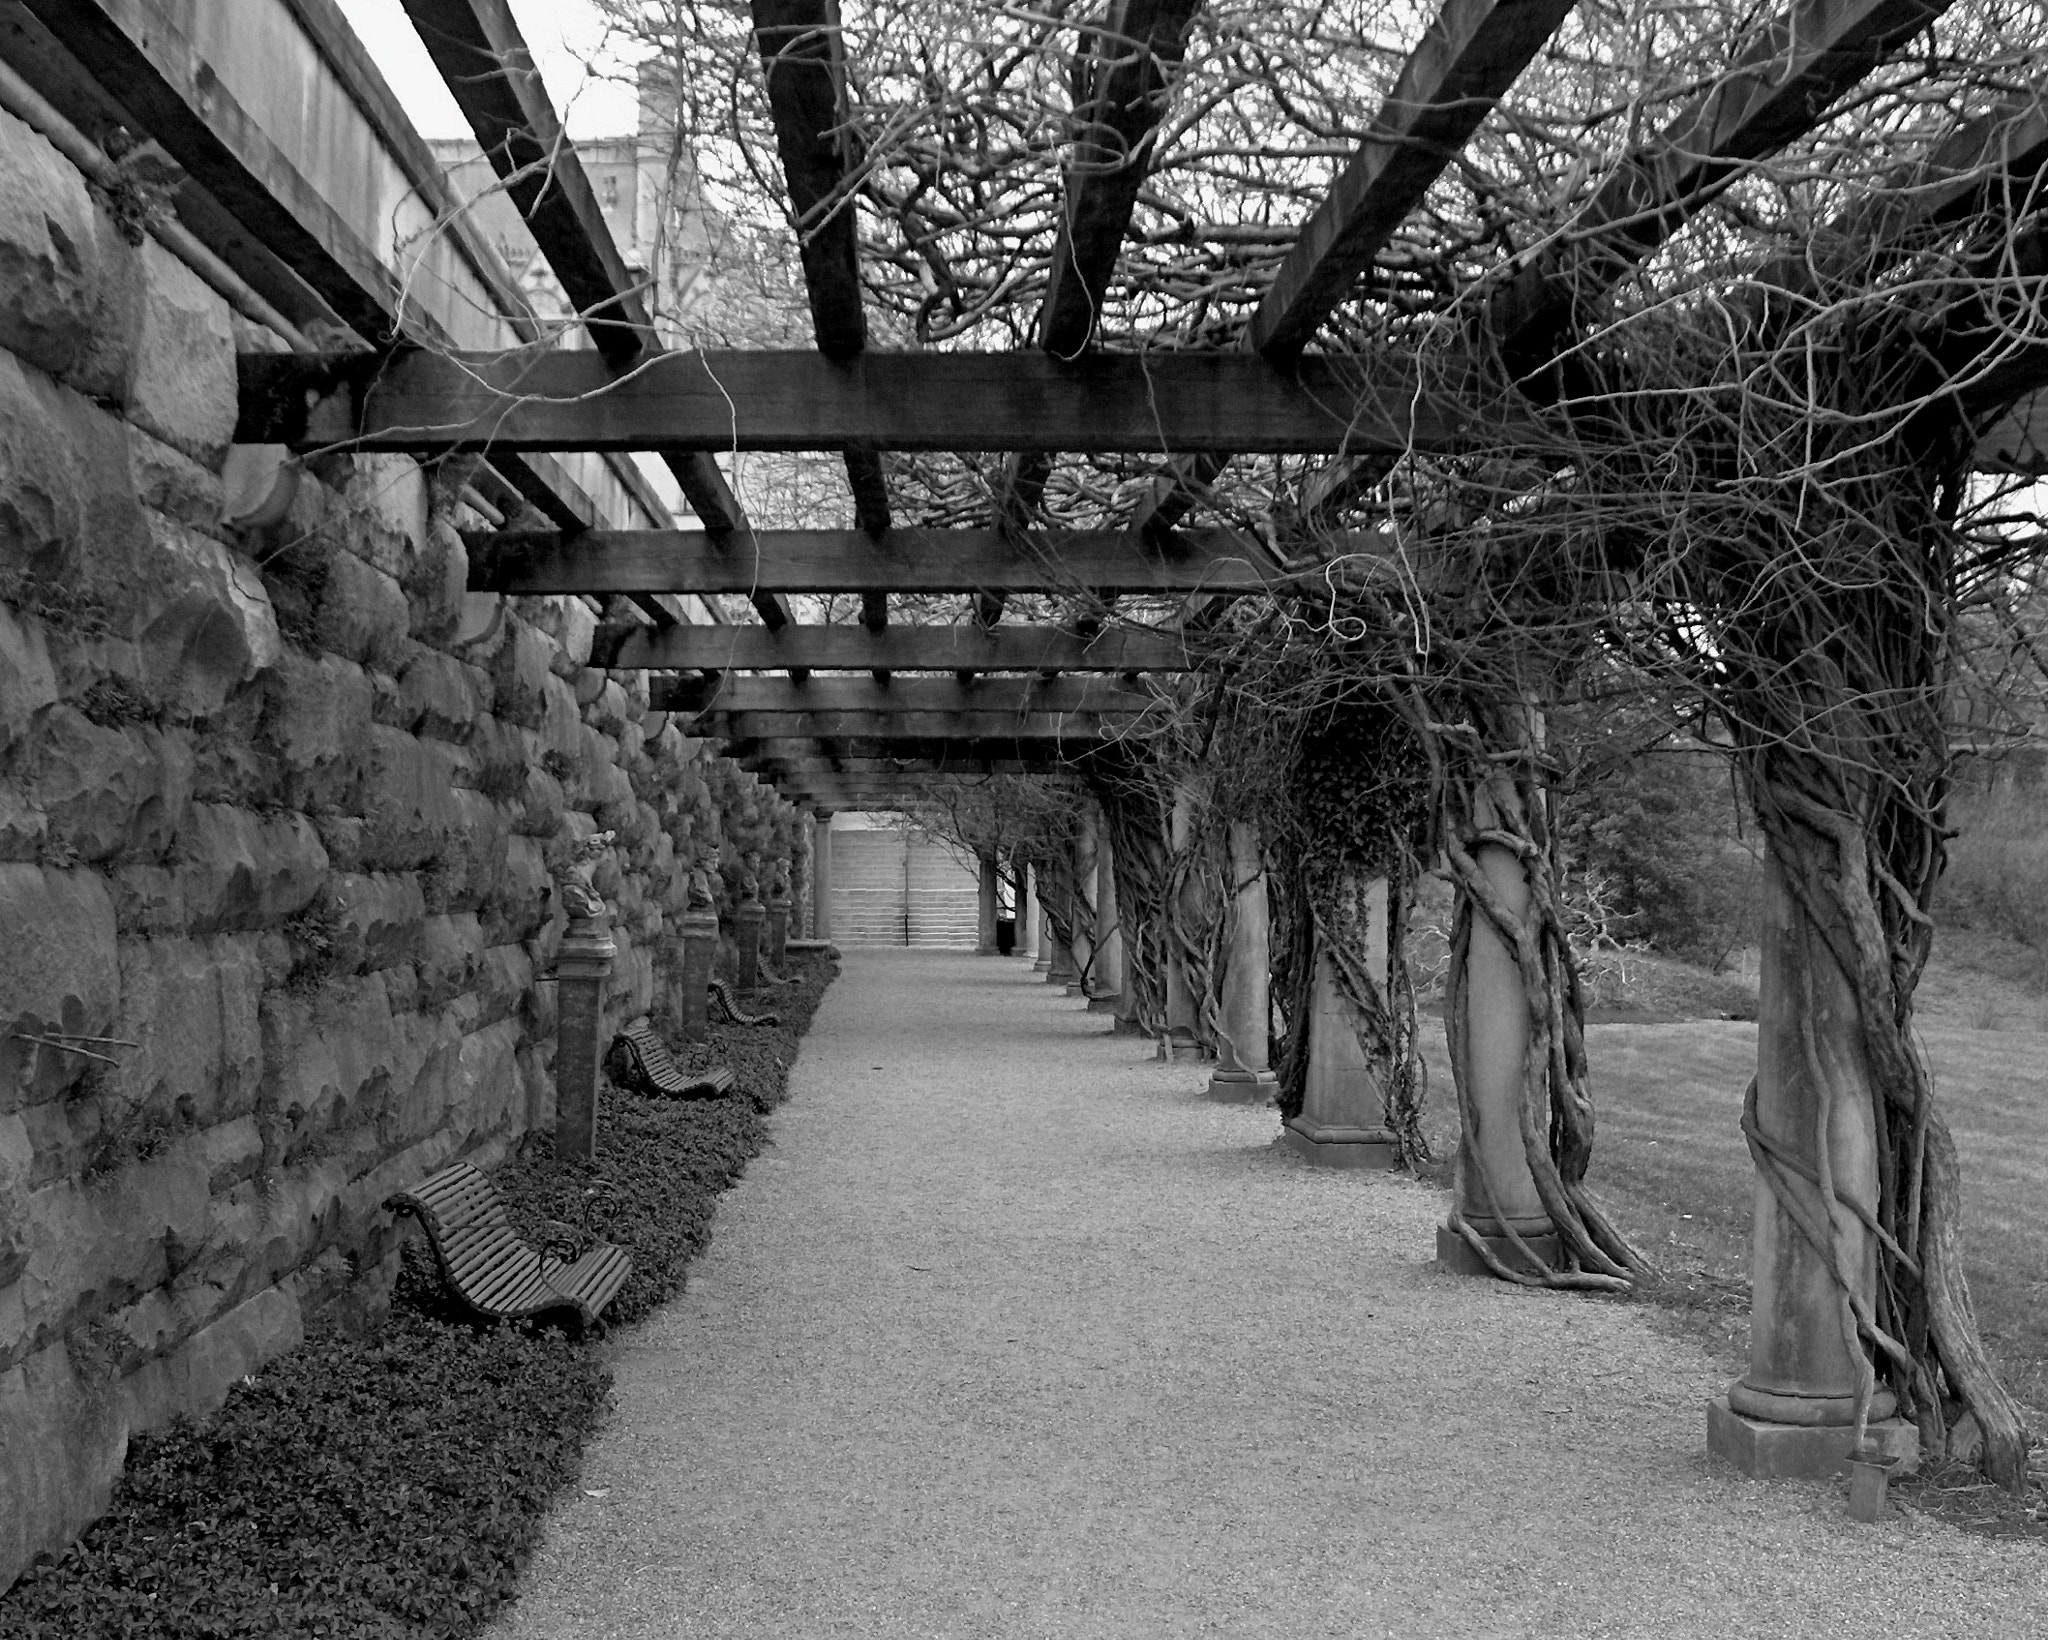 Photograph Trellis at a mountain estate by Scott Lloyd on 500px